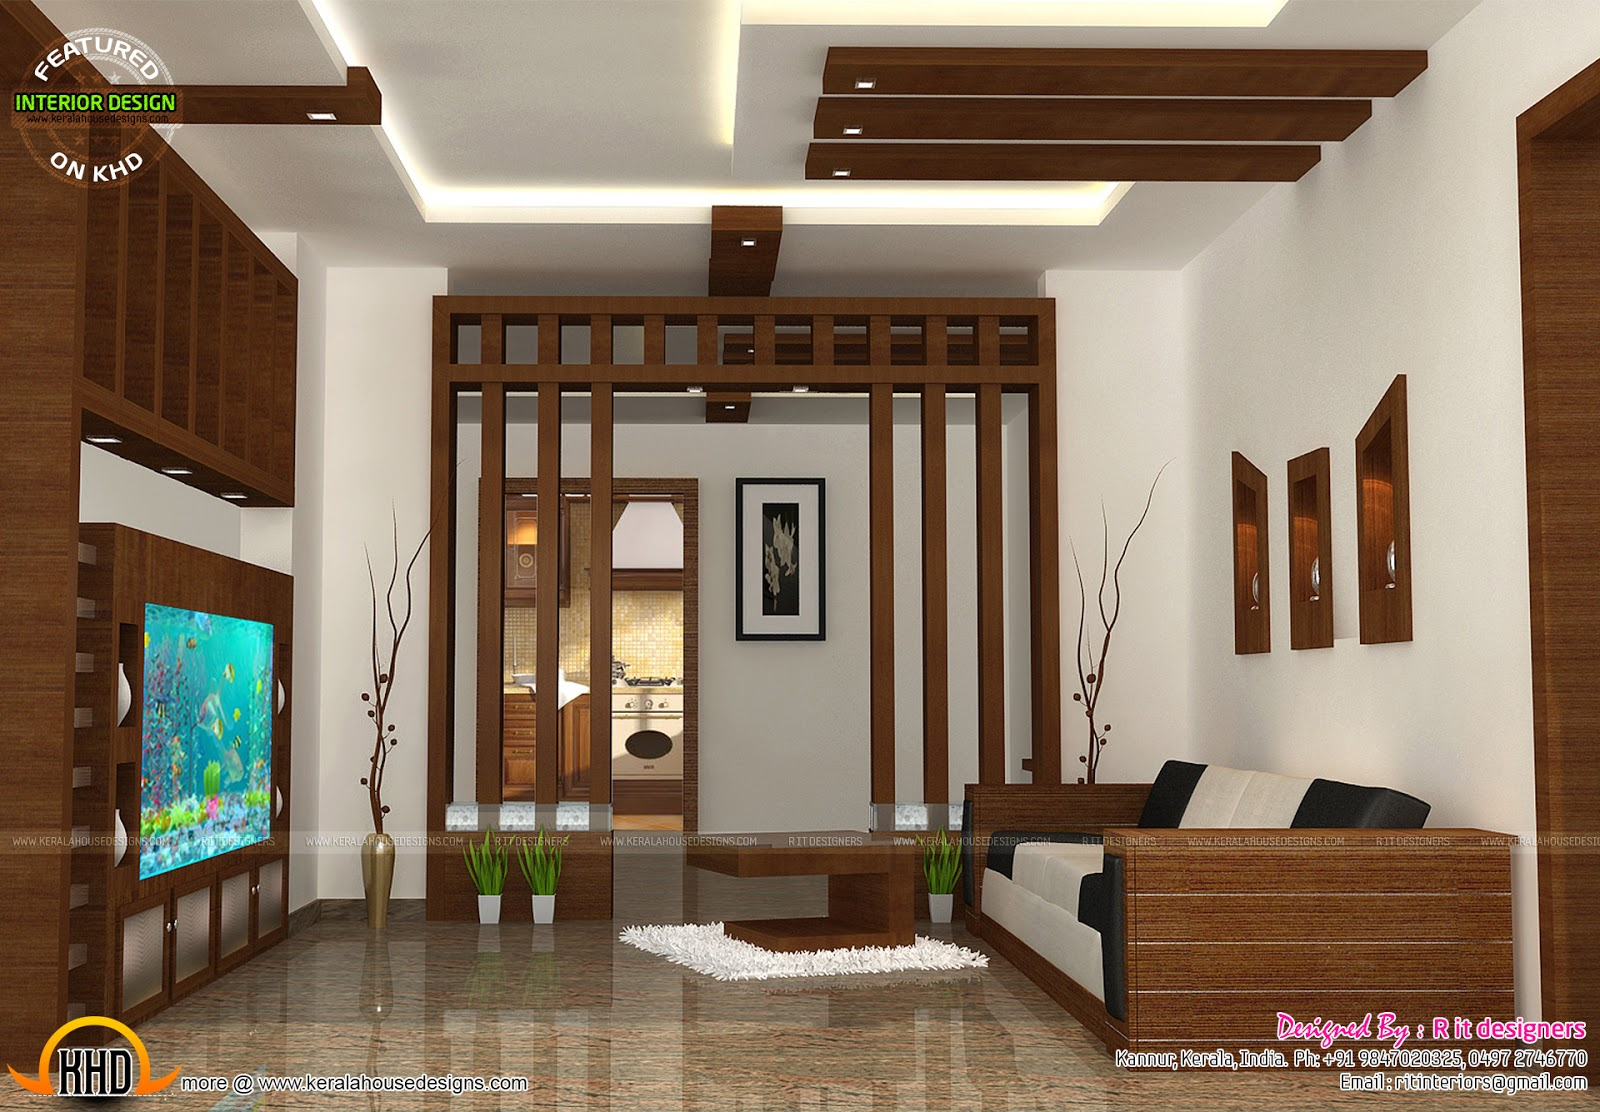 Sitout models joy studio design gallery best design for Kerala model interior designs